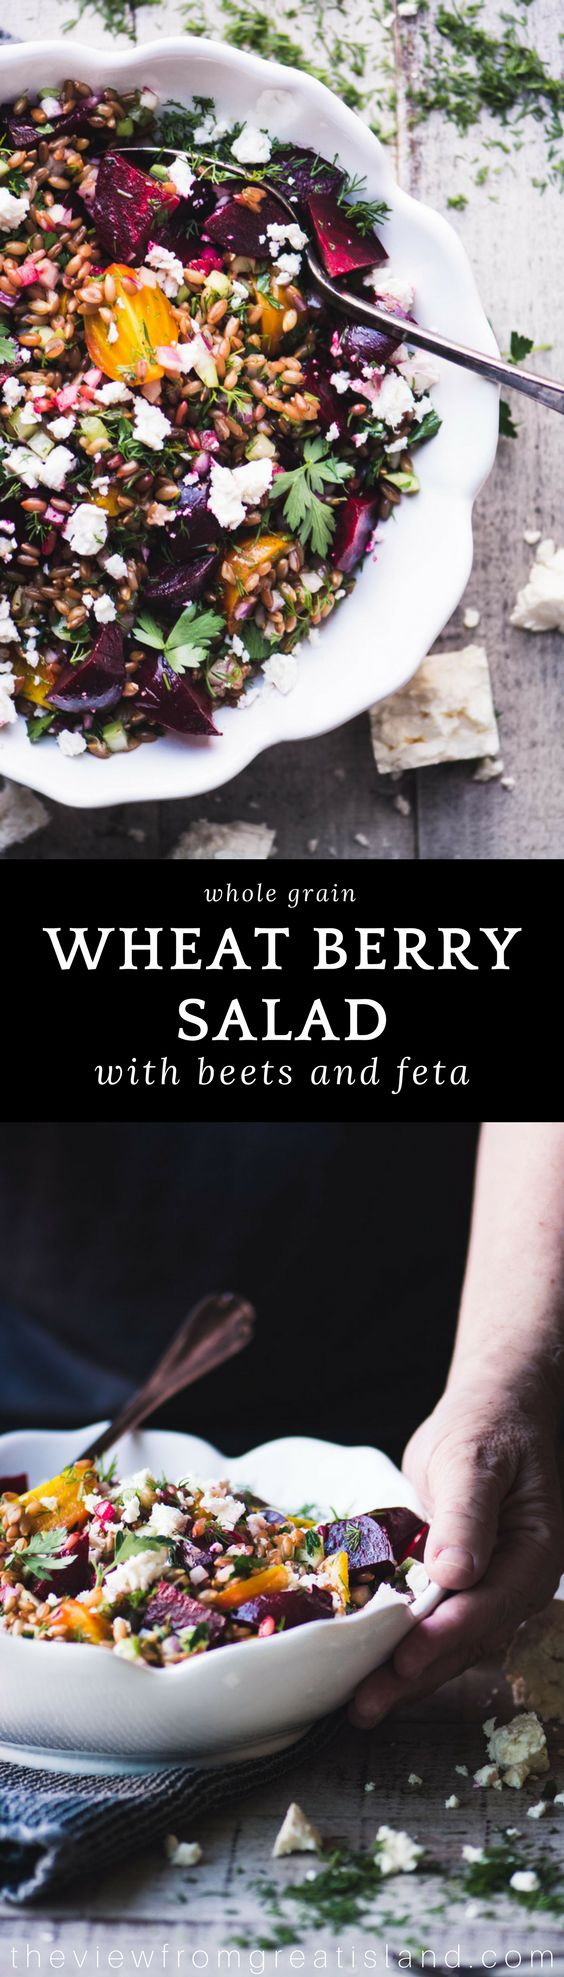 Wheat Berry Salad with Beets and Feta ~ this earthy whole grain salad is stunning enough for your holiday table, and don't be surprised if the carnivores in your group jump ship and join the vegetarians! #salad #wholegrains #wheatberries #grainsalad #side